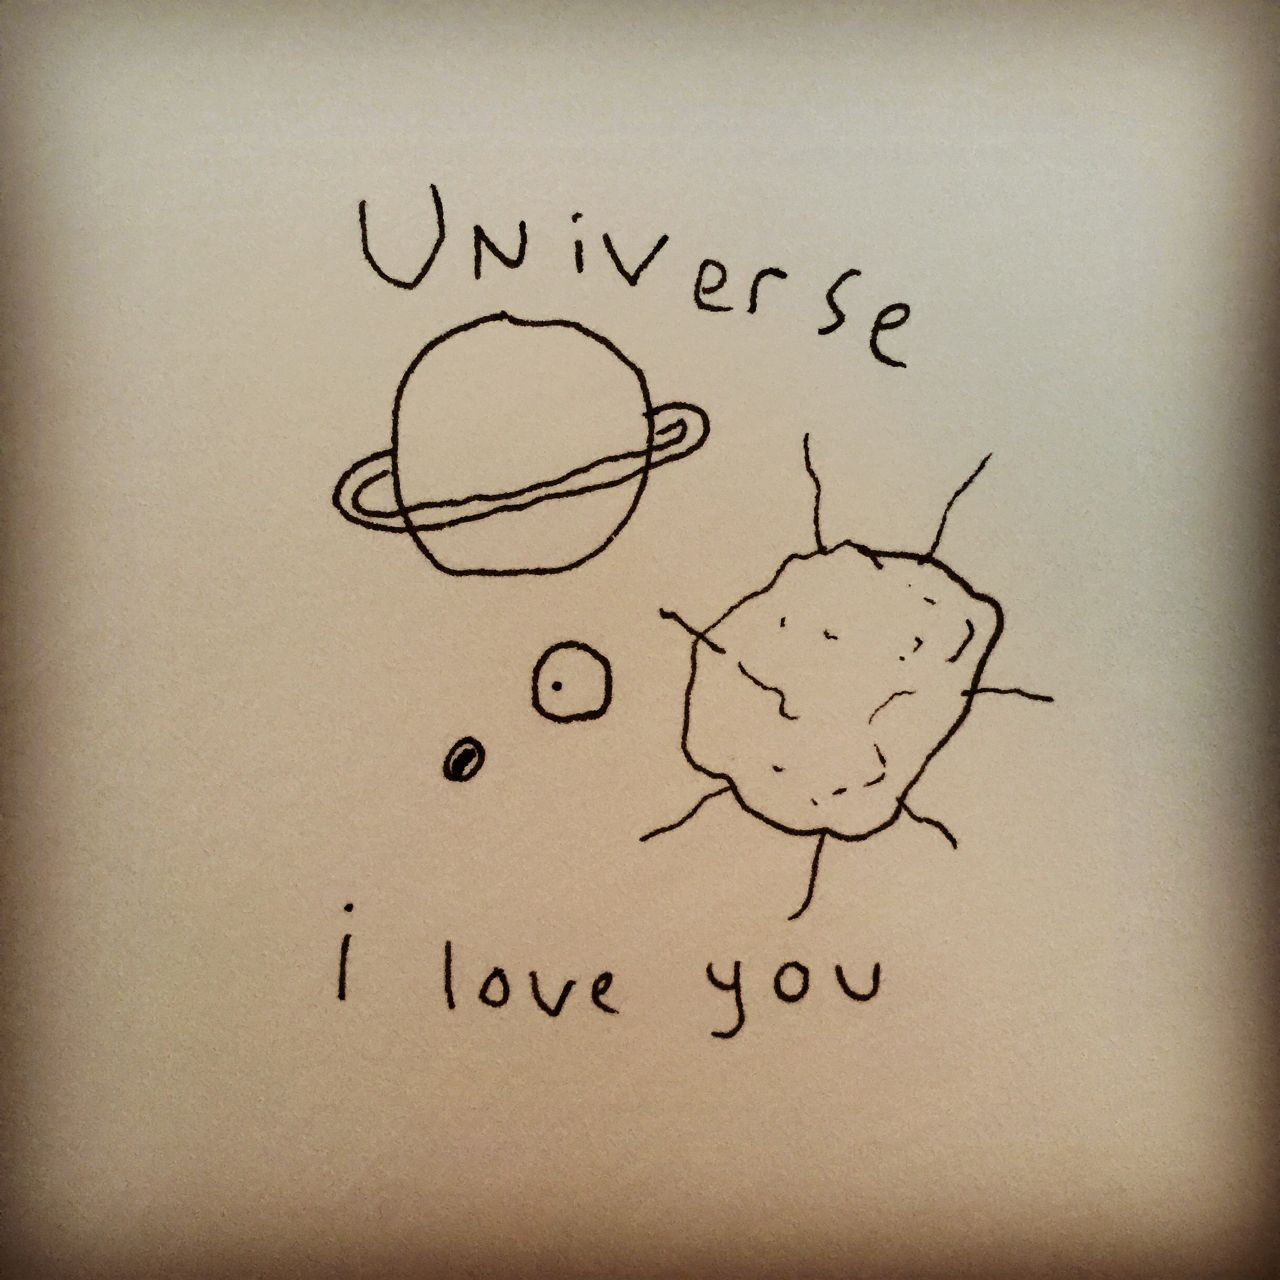 I Love You Drawings: Artist - Matthew Gray Gubler